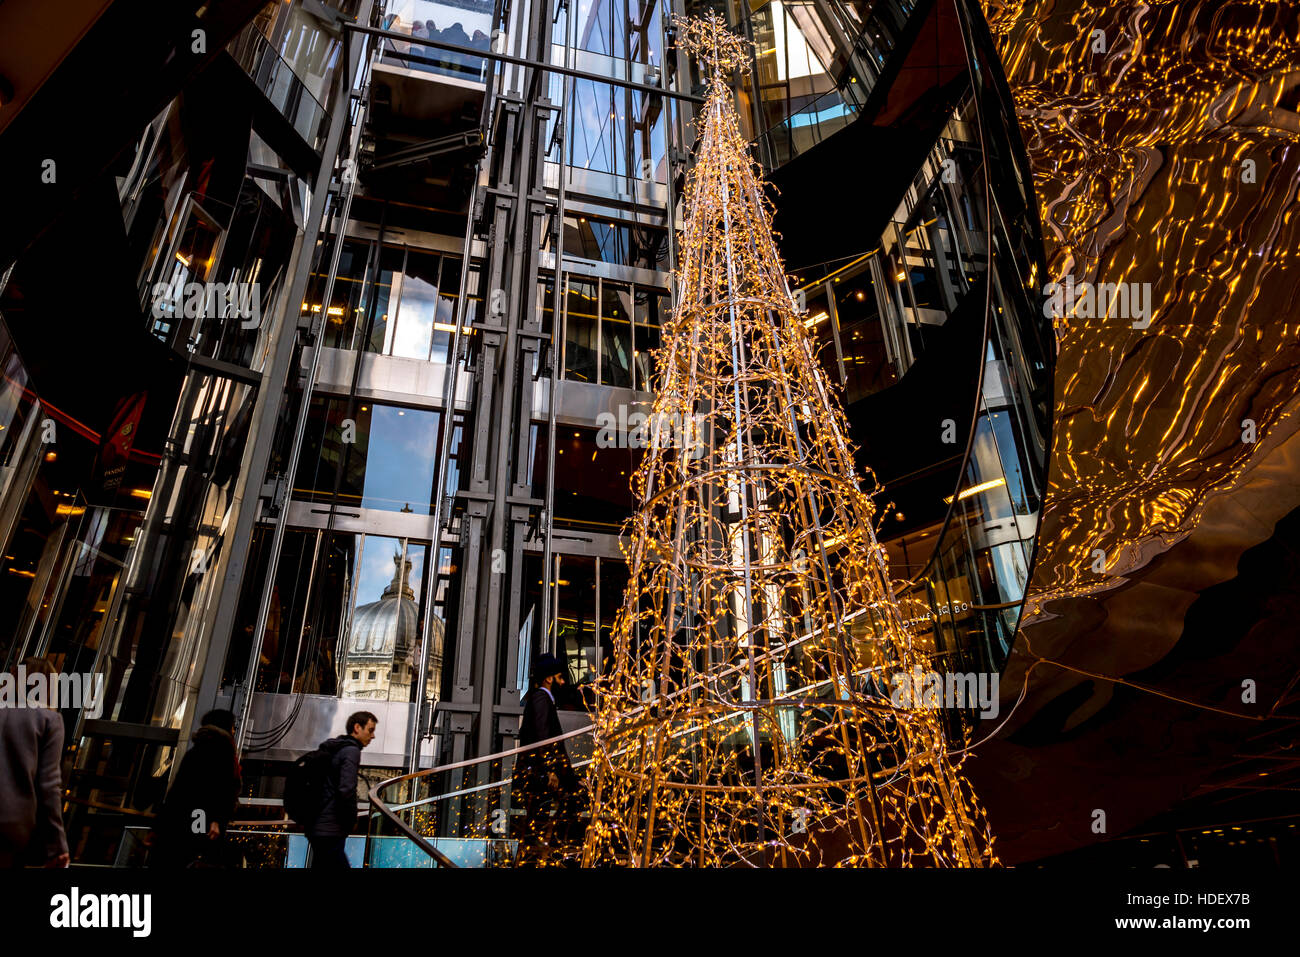 Christmas tree and decoration at One New Change, London - Stock Image